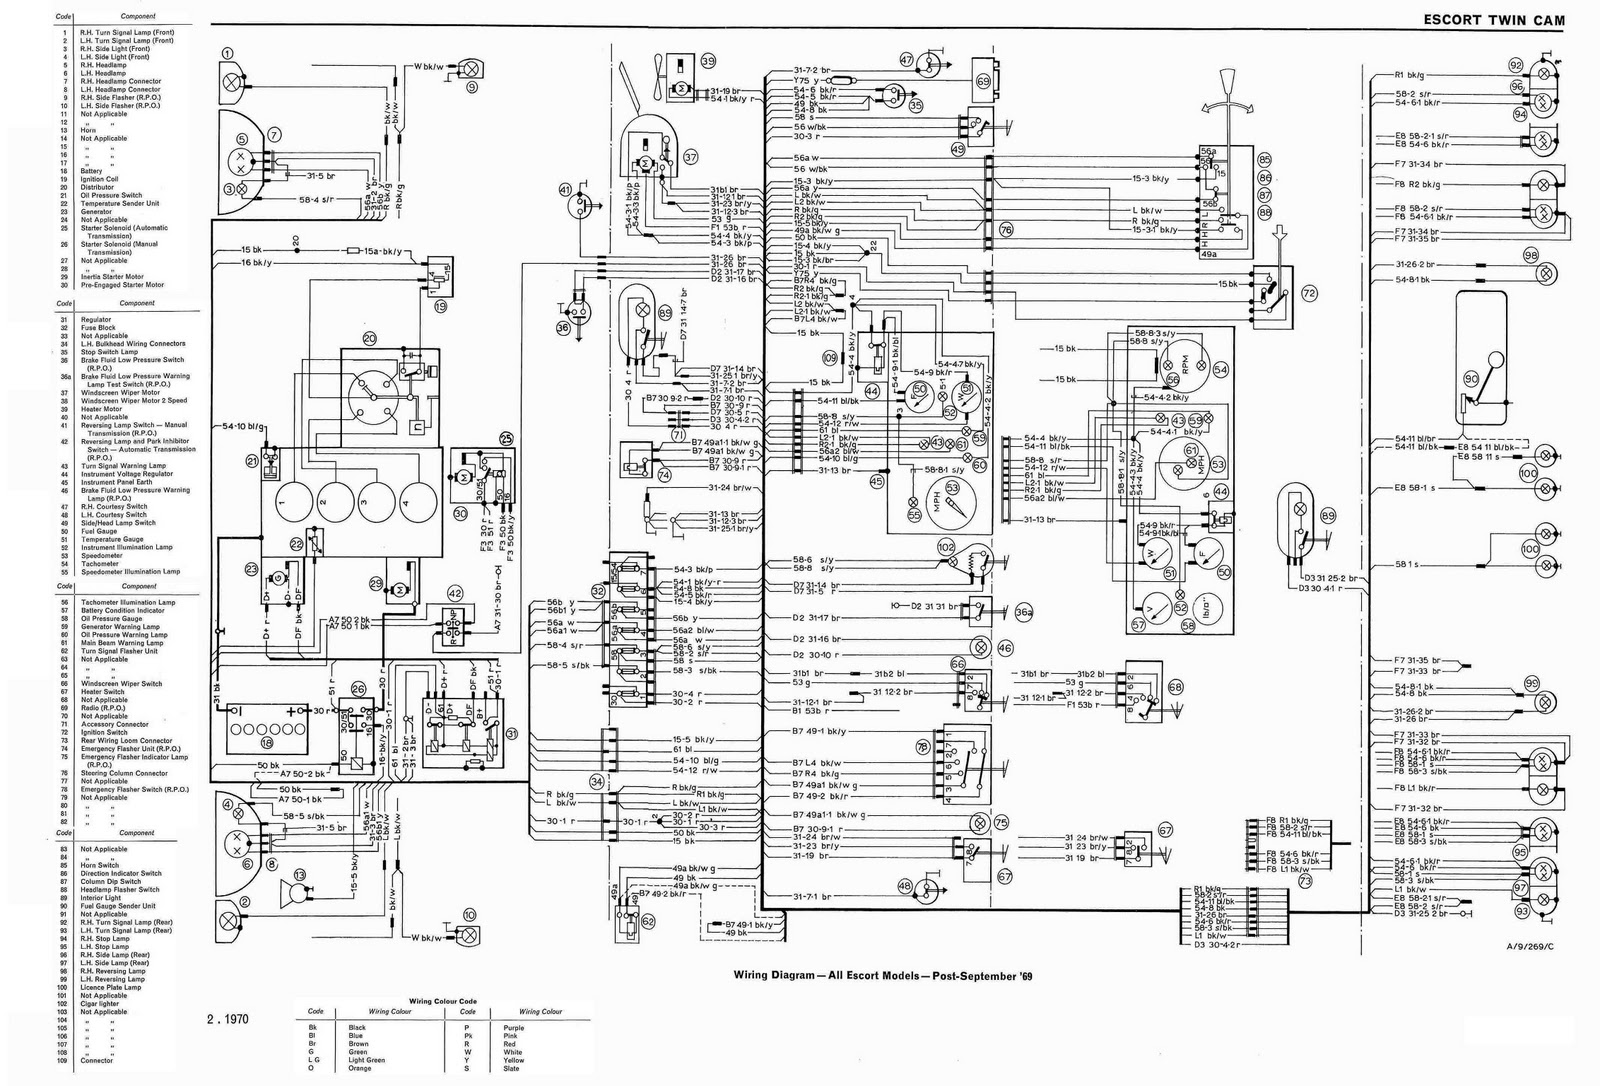 Ford F Wiring Diagram  Download Auto Wiring Diagram - 1973 ford mustang wiring harness diagram